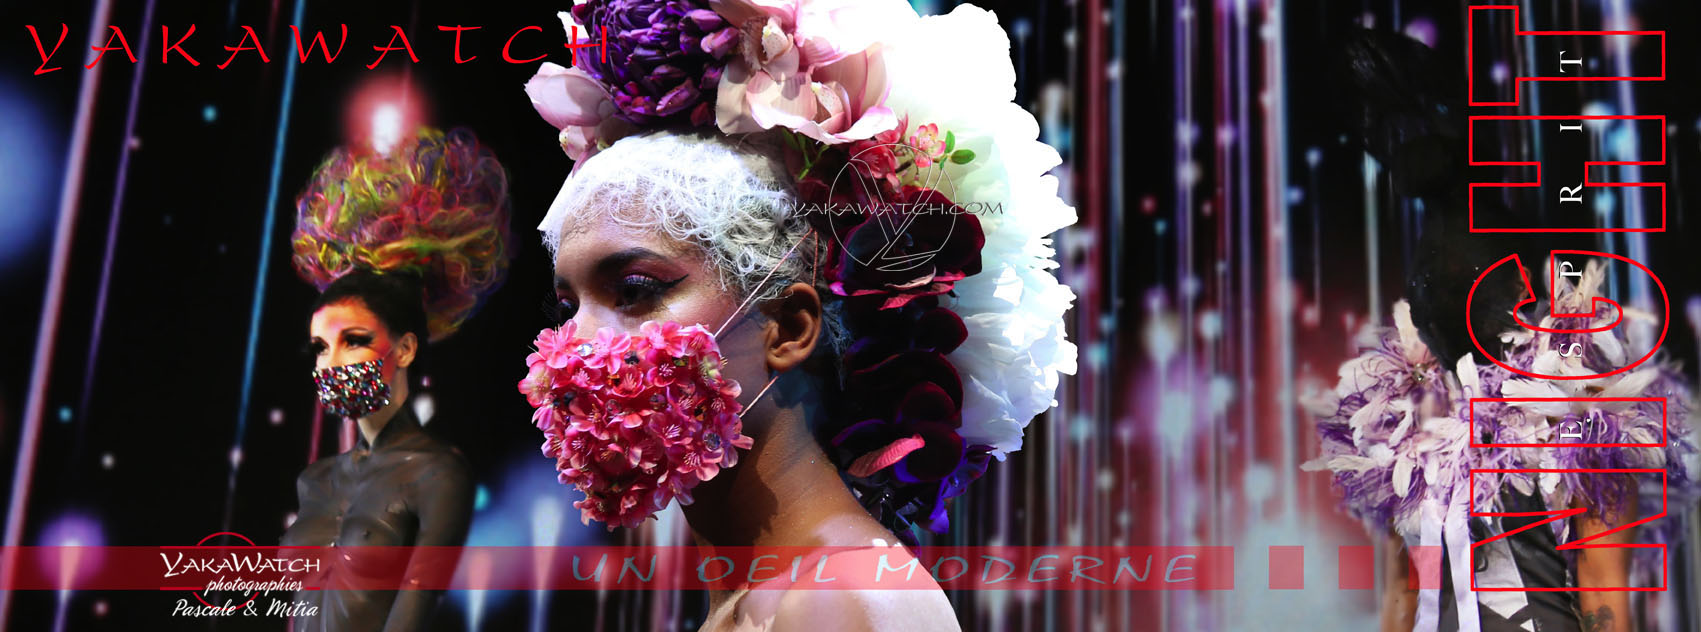 Masques de printemps - Morgane Hilgers MUA - MCB Paris 2018